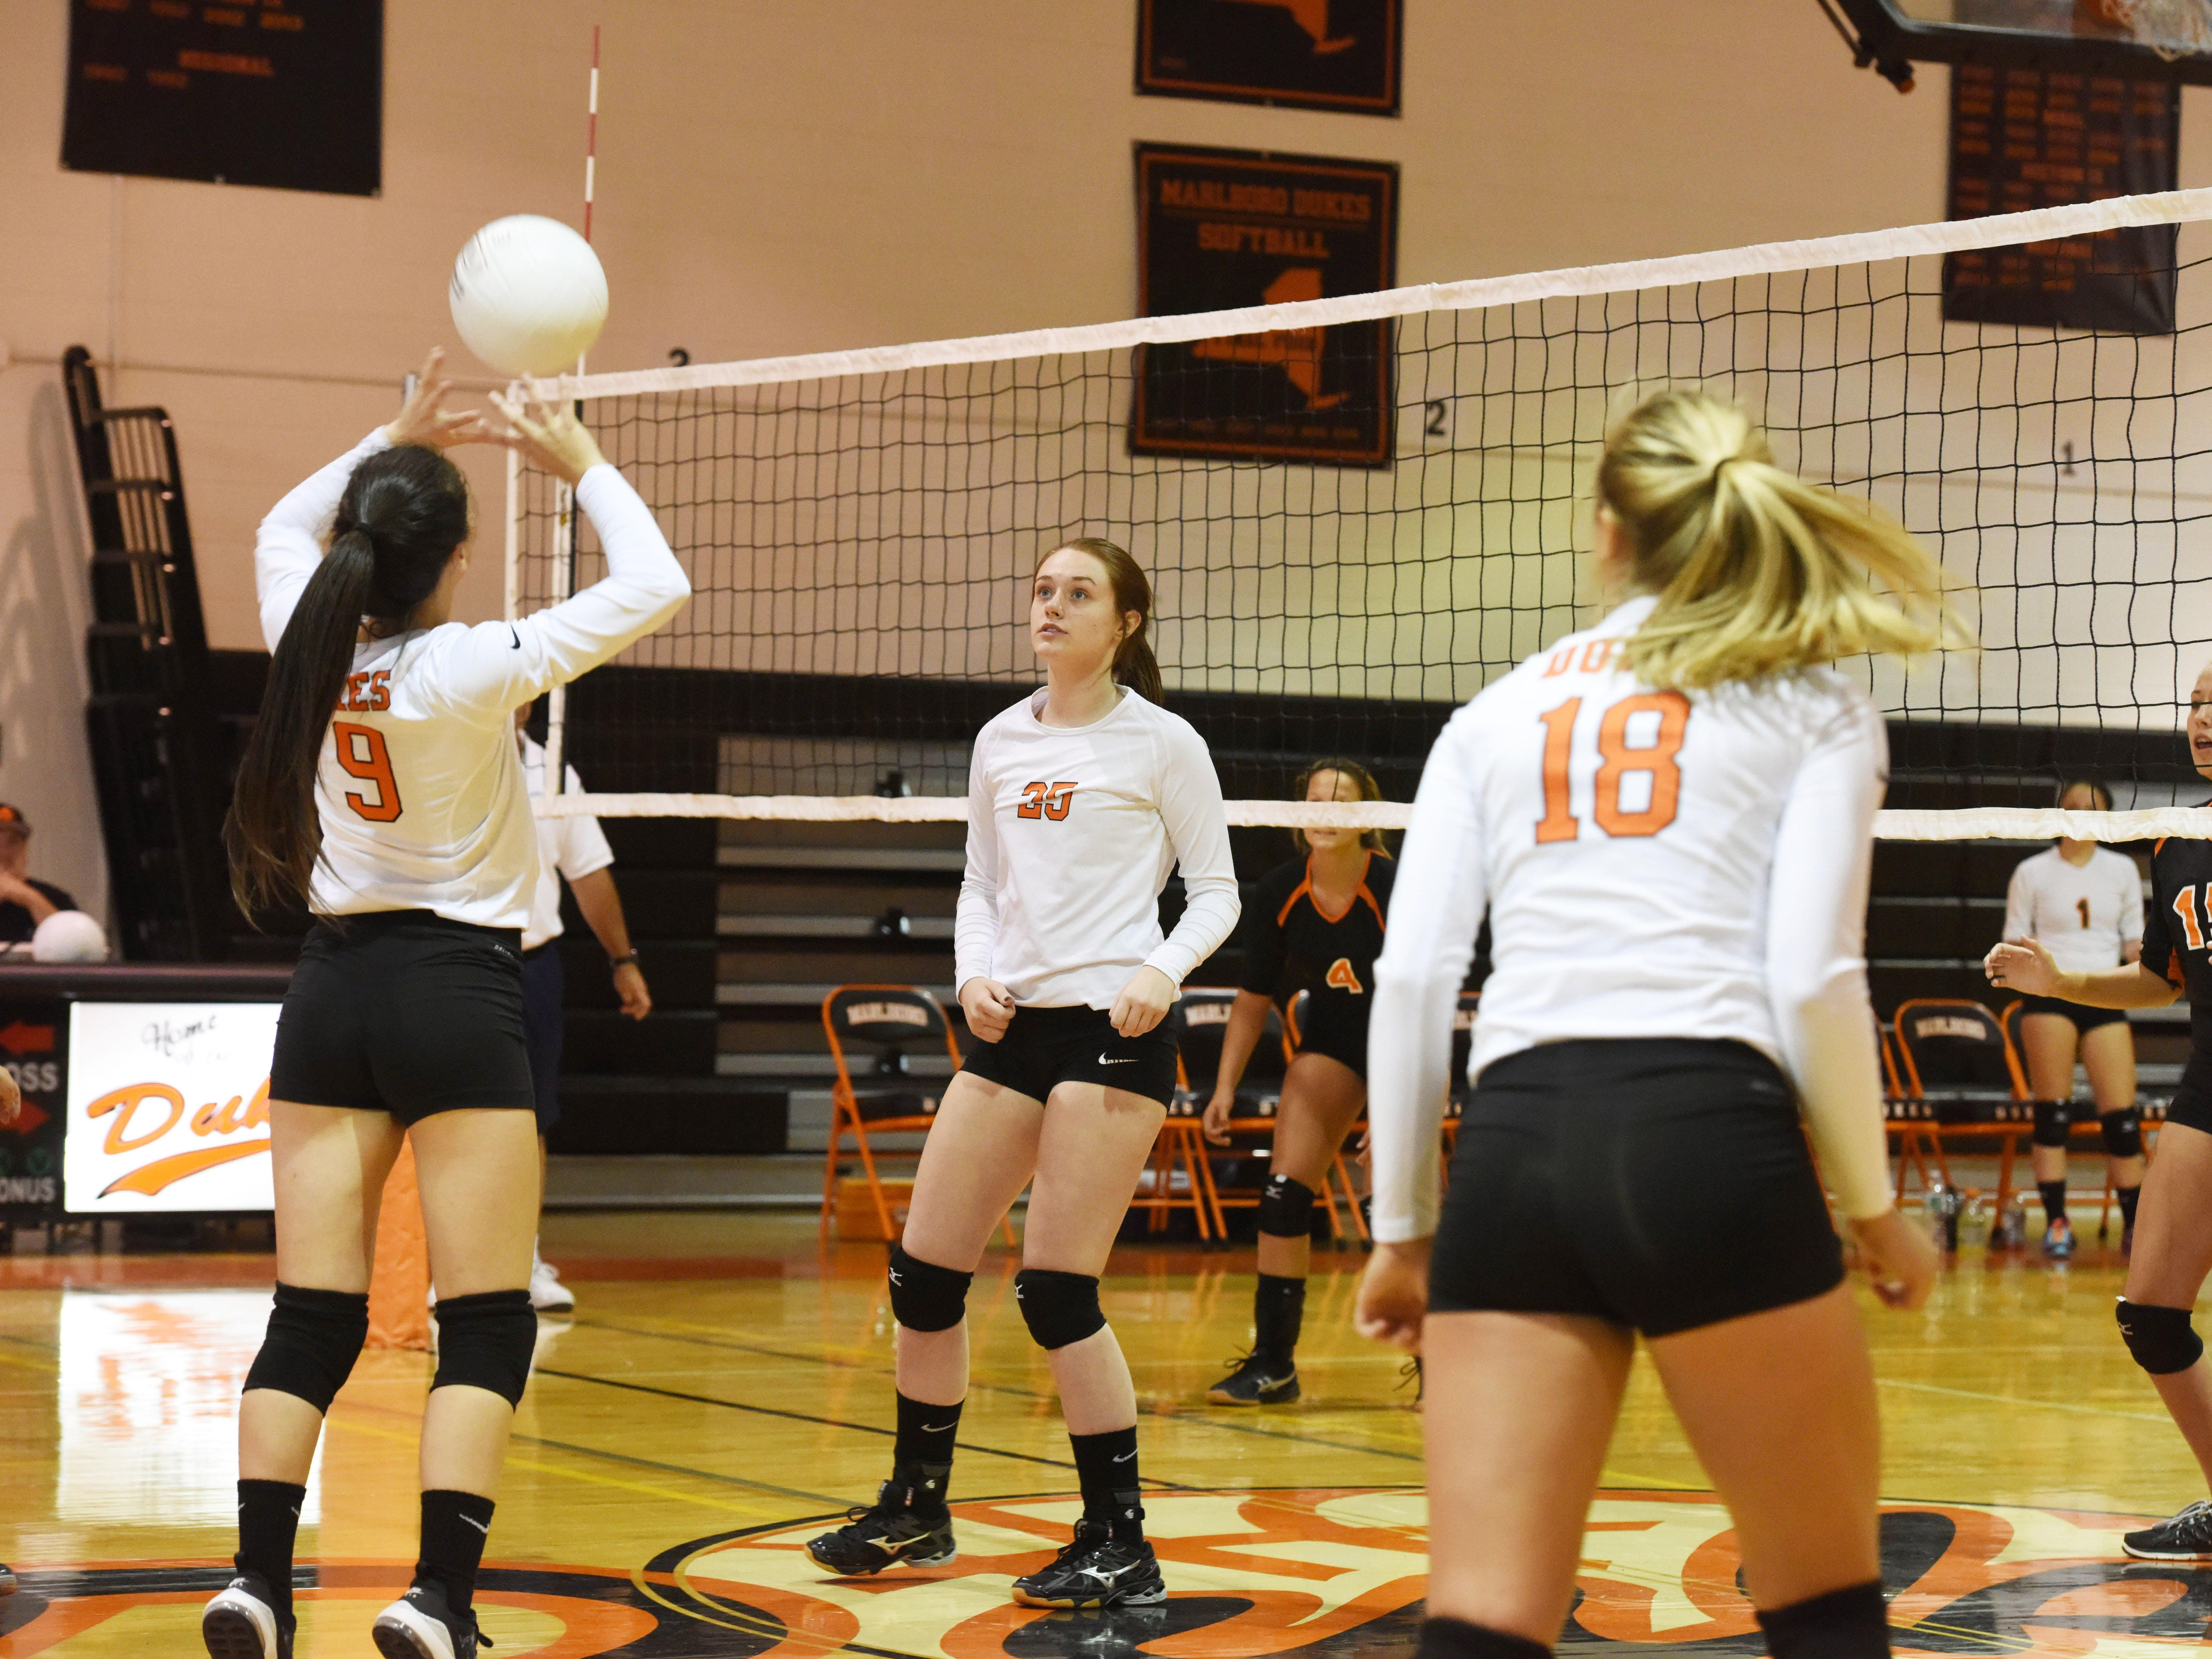 Marlboro's Taylor Felicello, left, hits the ball up as teammates Ashley Gaffney, center, and Amber Mianti, right, look on.